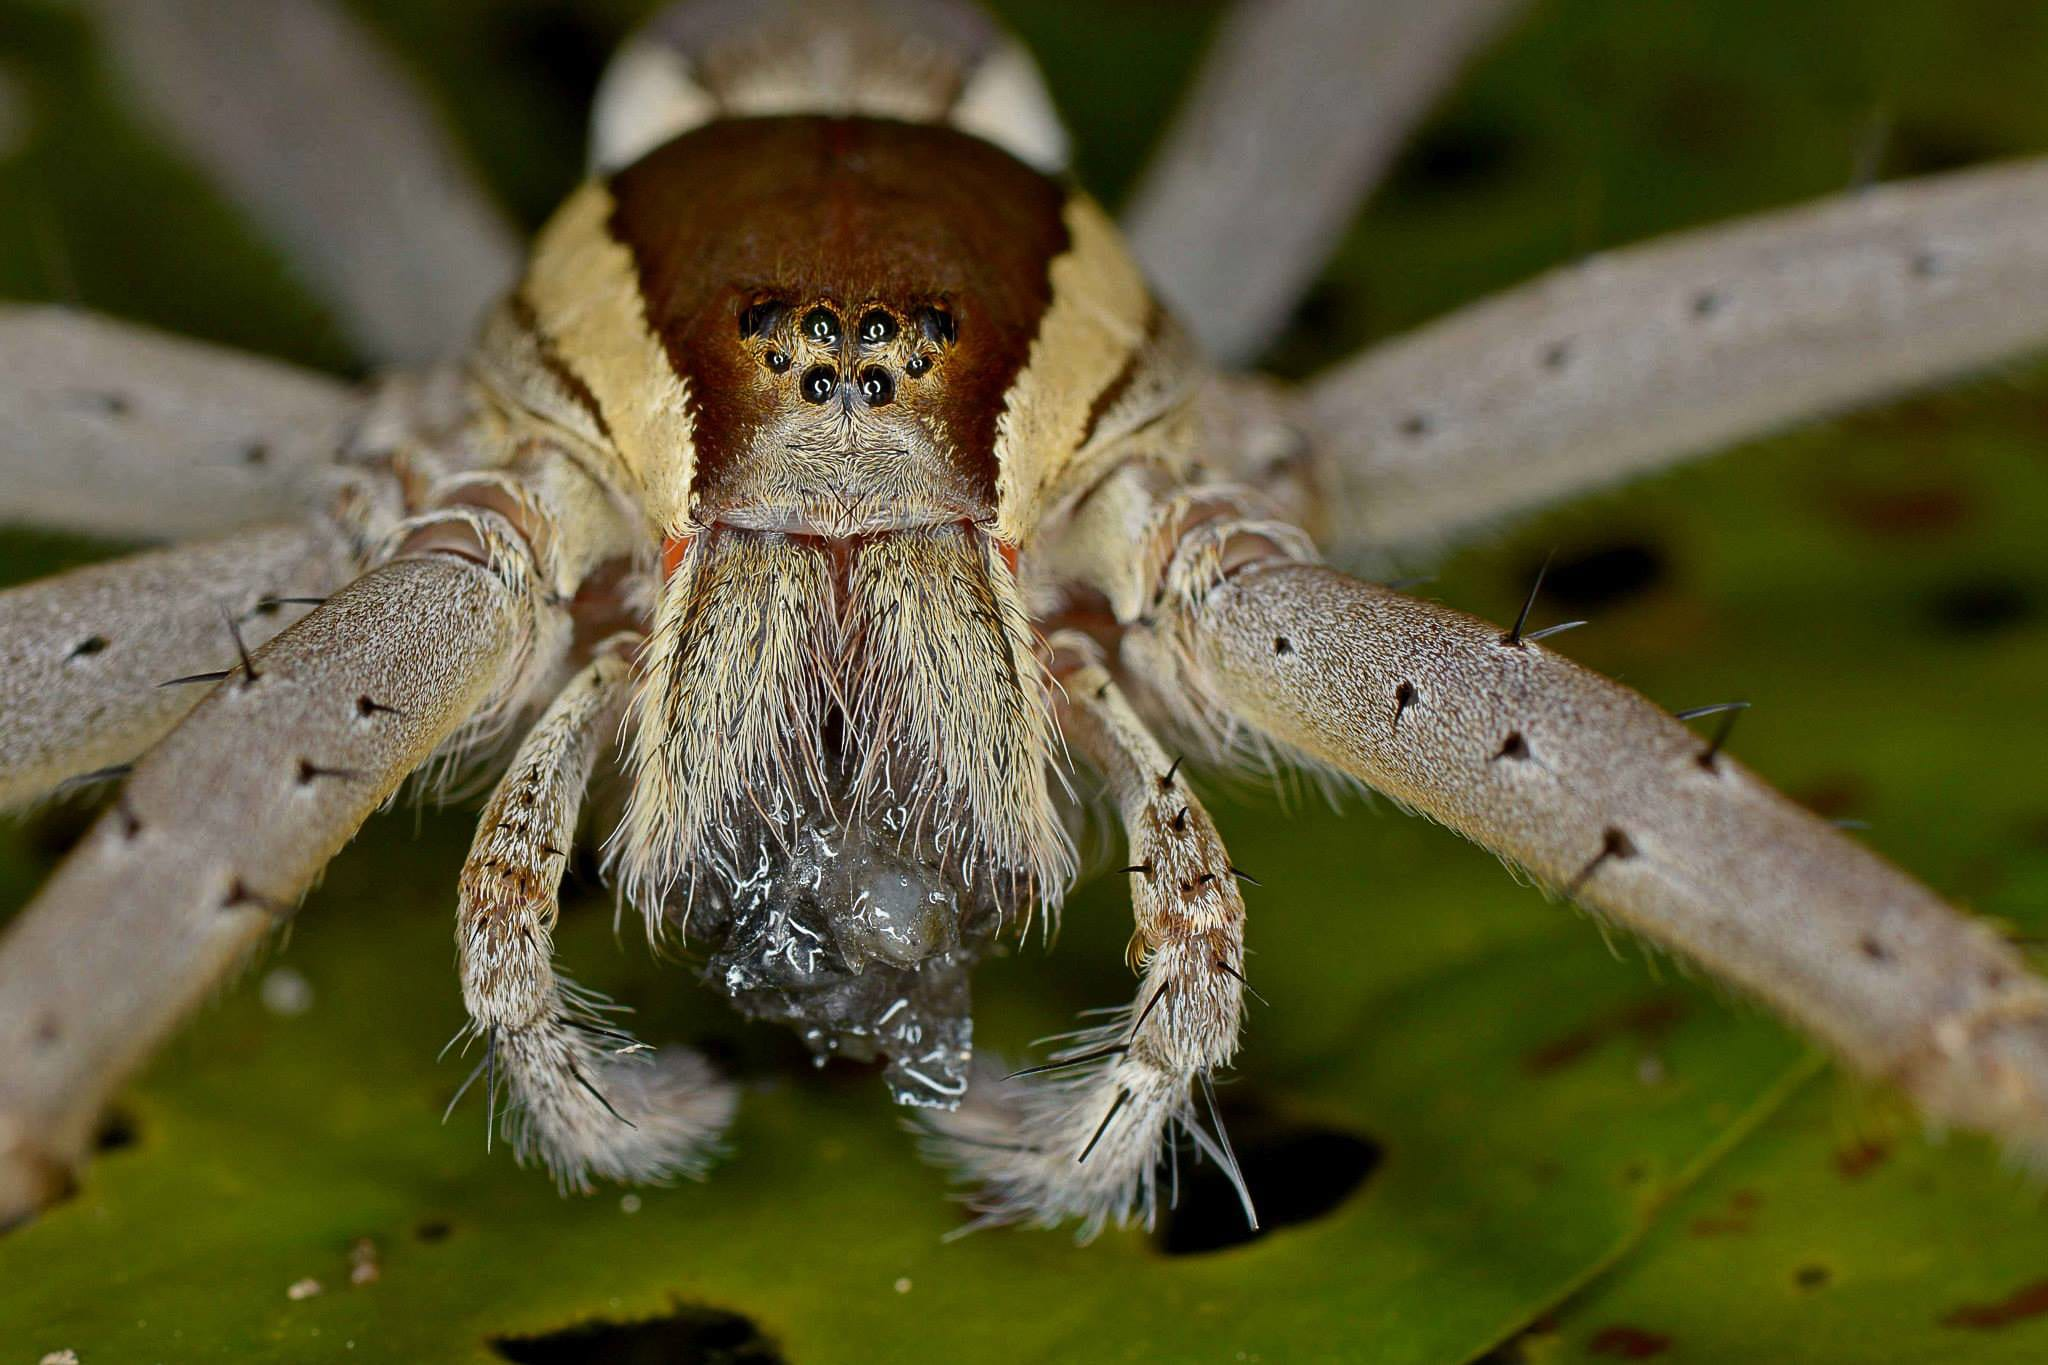 """These unique spiders sense their prey by feeling vibrations carried through the water. Like other spiders that feel vibrations in a web by means of tiny, extremely sensitive hair called trichobothria on their legs, the fishing spider detects these vibrations in water. On sensing prey, the spider quickly pounces, injecting the catch with neurotoxin and paralysing it. The victorious hunter then retreats to the vegetation or a nearby rock to consume its catch. """"The entire process of eating its catch takes around 40 minutes,"""" notes Biswas. The passing prey could also include insects like striders which are a large art of their diet and other invertebrates like tadpoles and frogs."""